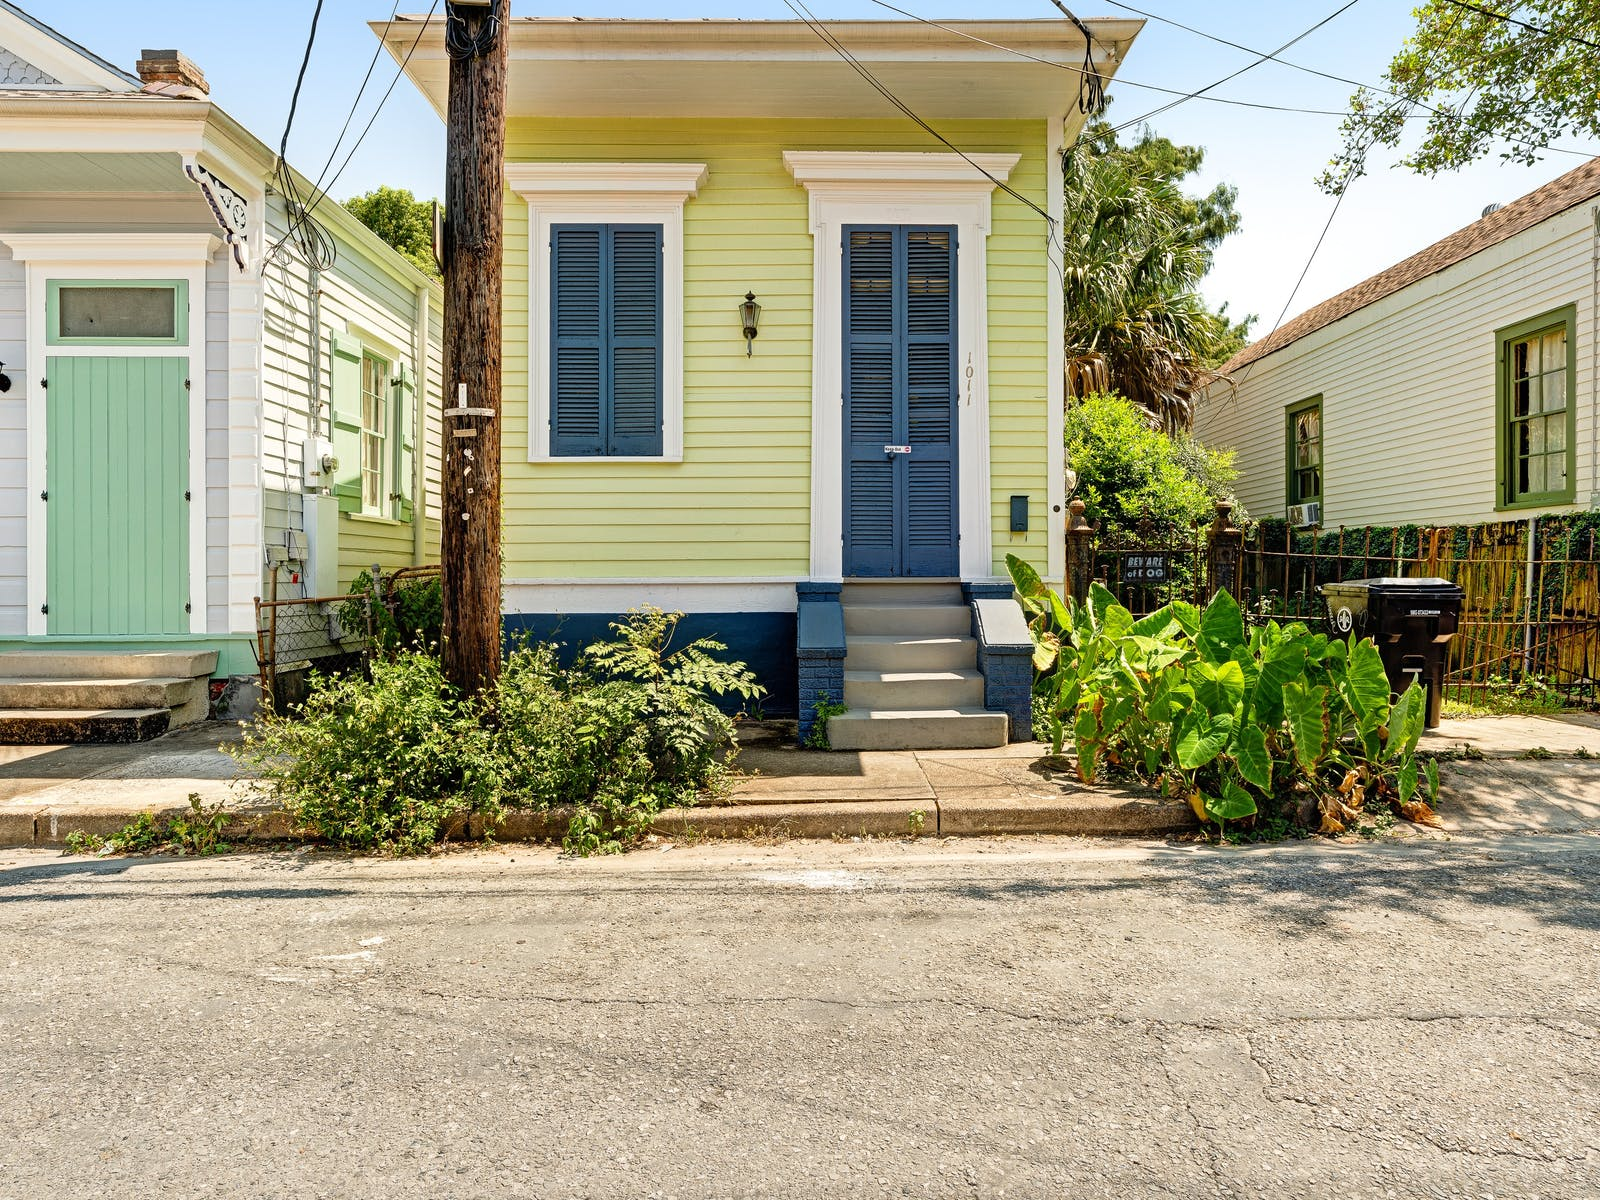 Adorable yellow vacation home in a neighborhood in New Orleans, LA.